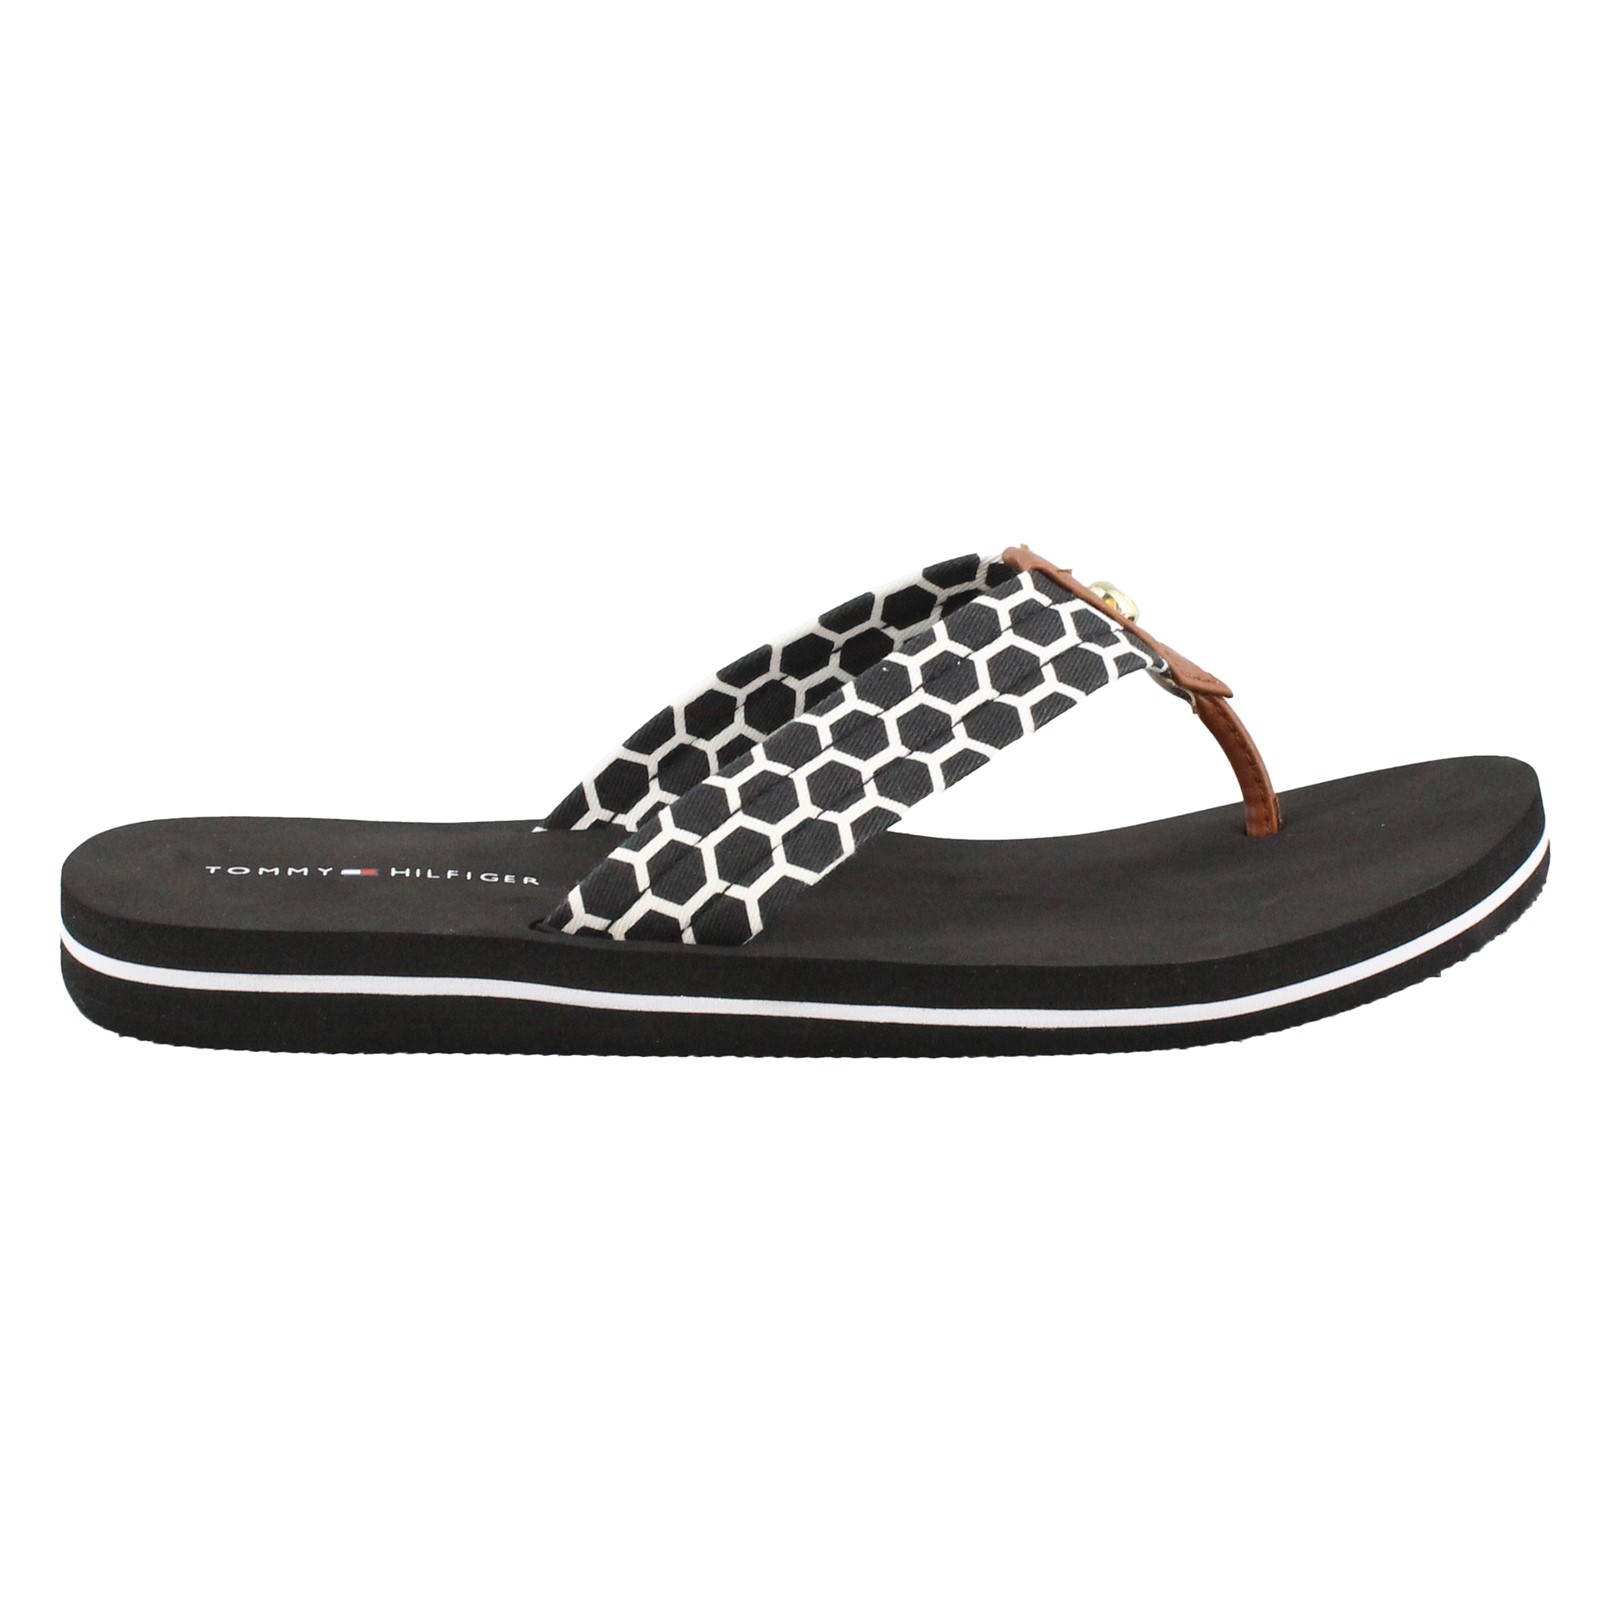 Women's Tommy Hilfiger, Chipotl X Thong Sandals